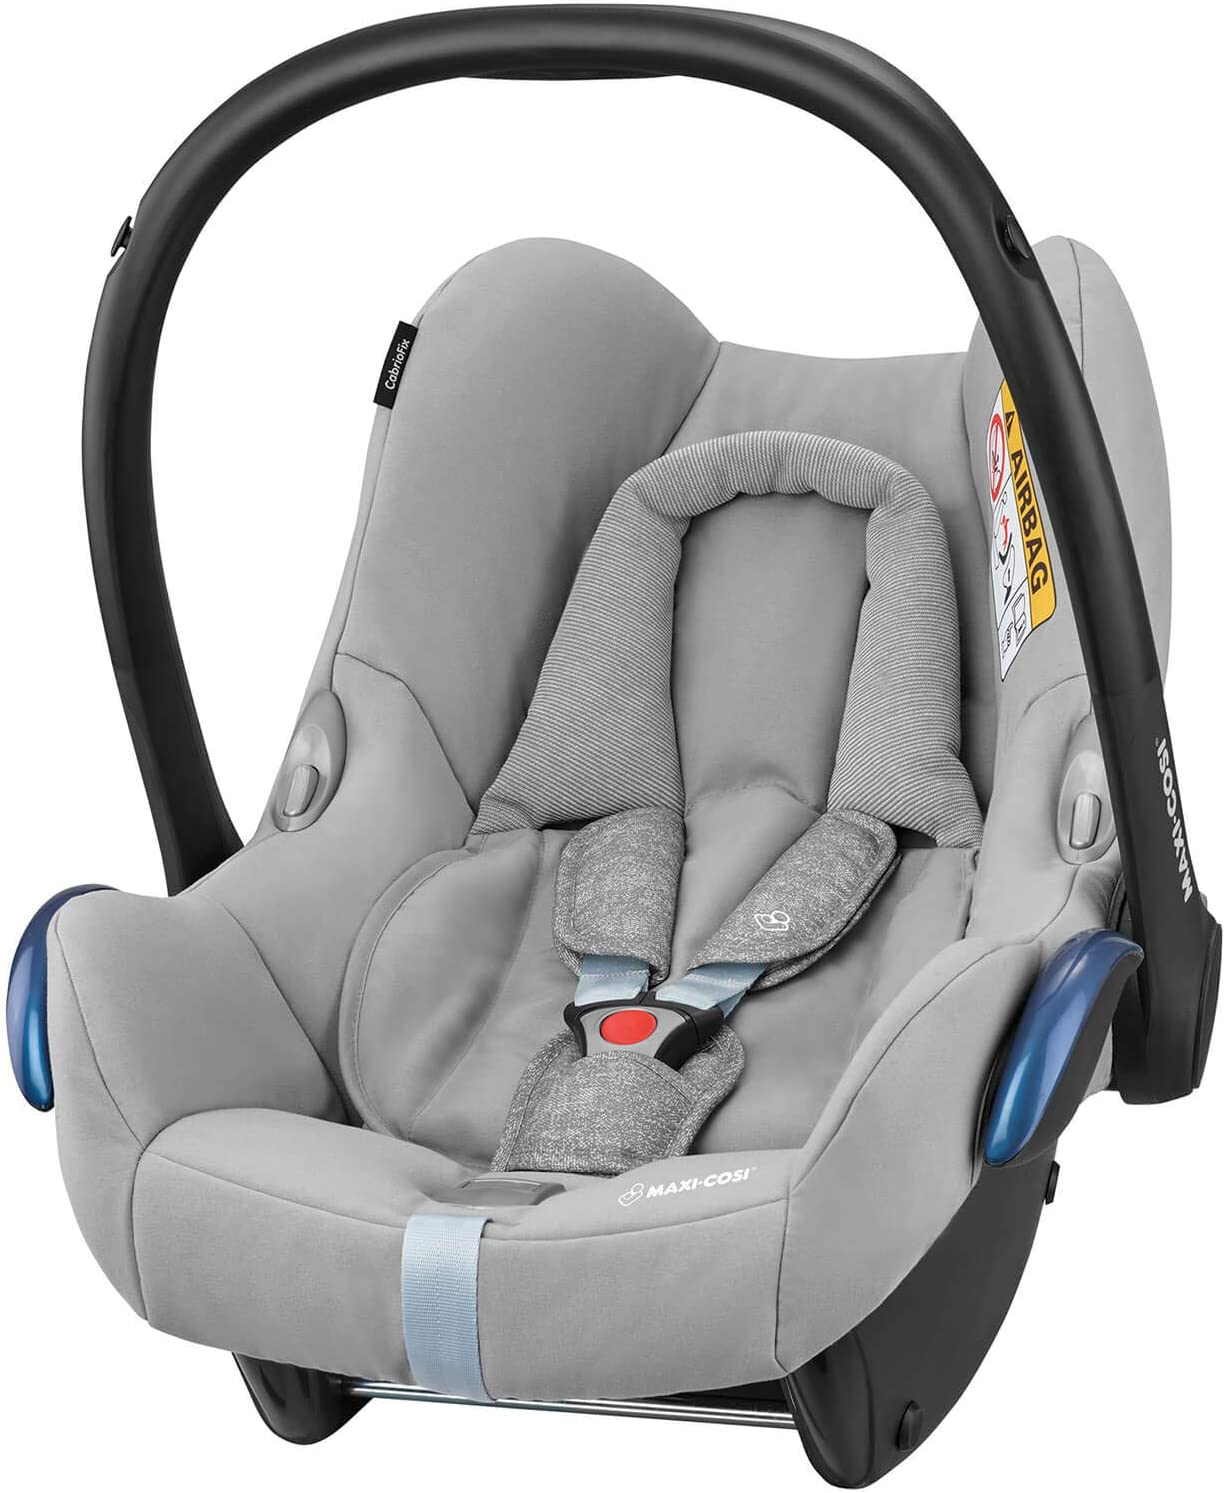 0-13/ kg Maxi-Cosi CabrioFix/ Si/ège auto groupe 0/ + Nomad Grey Gris